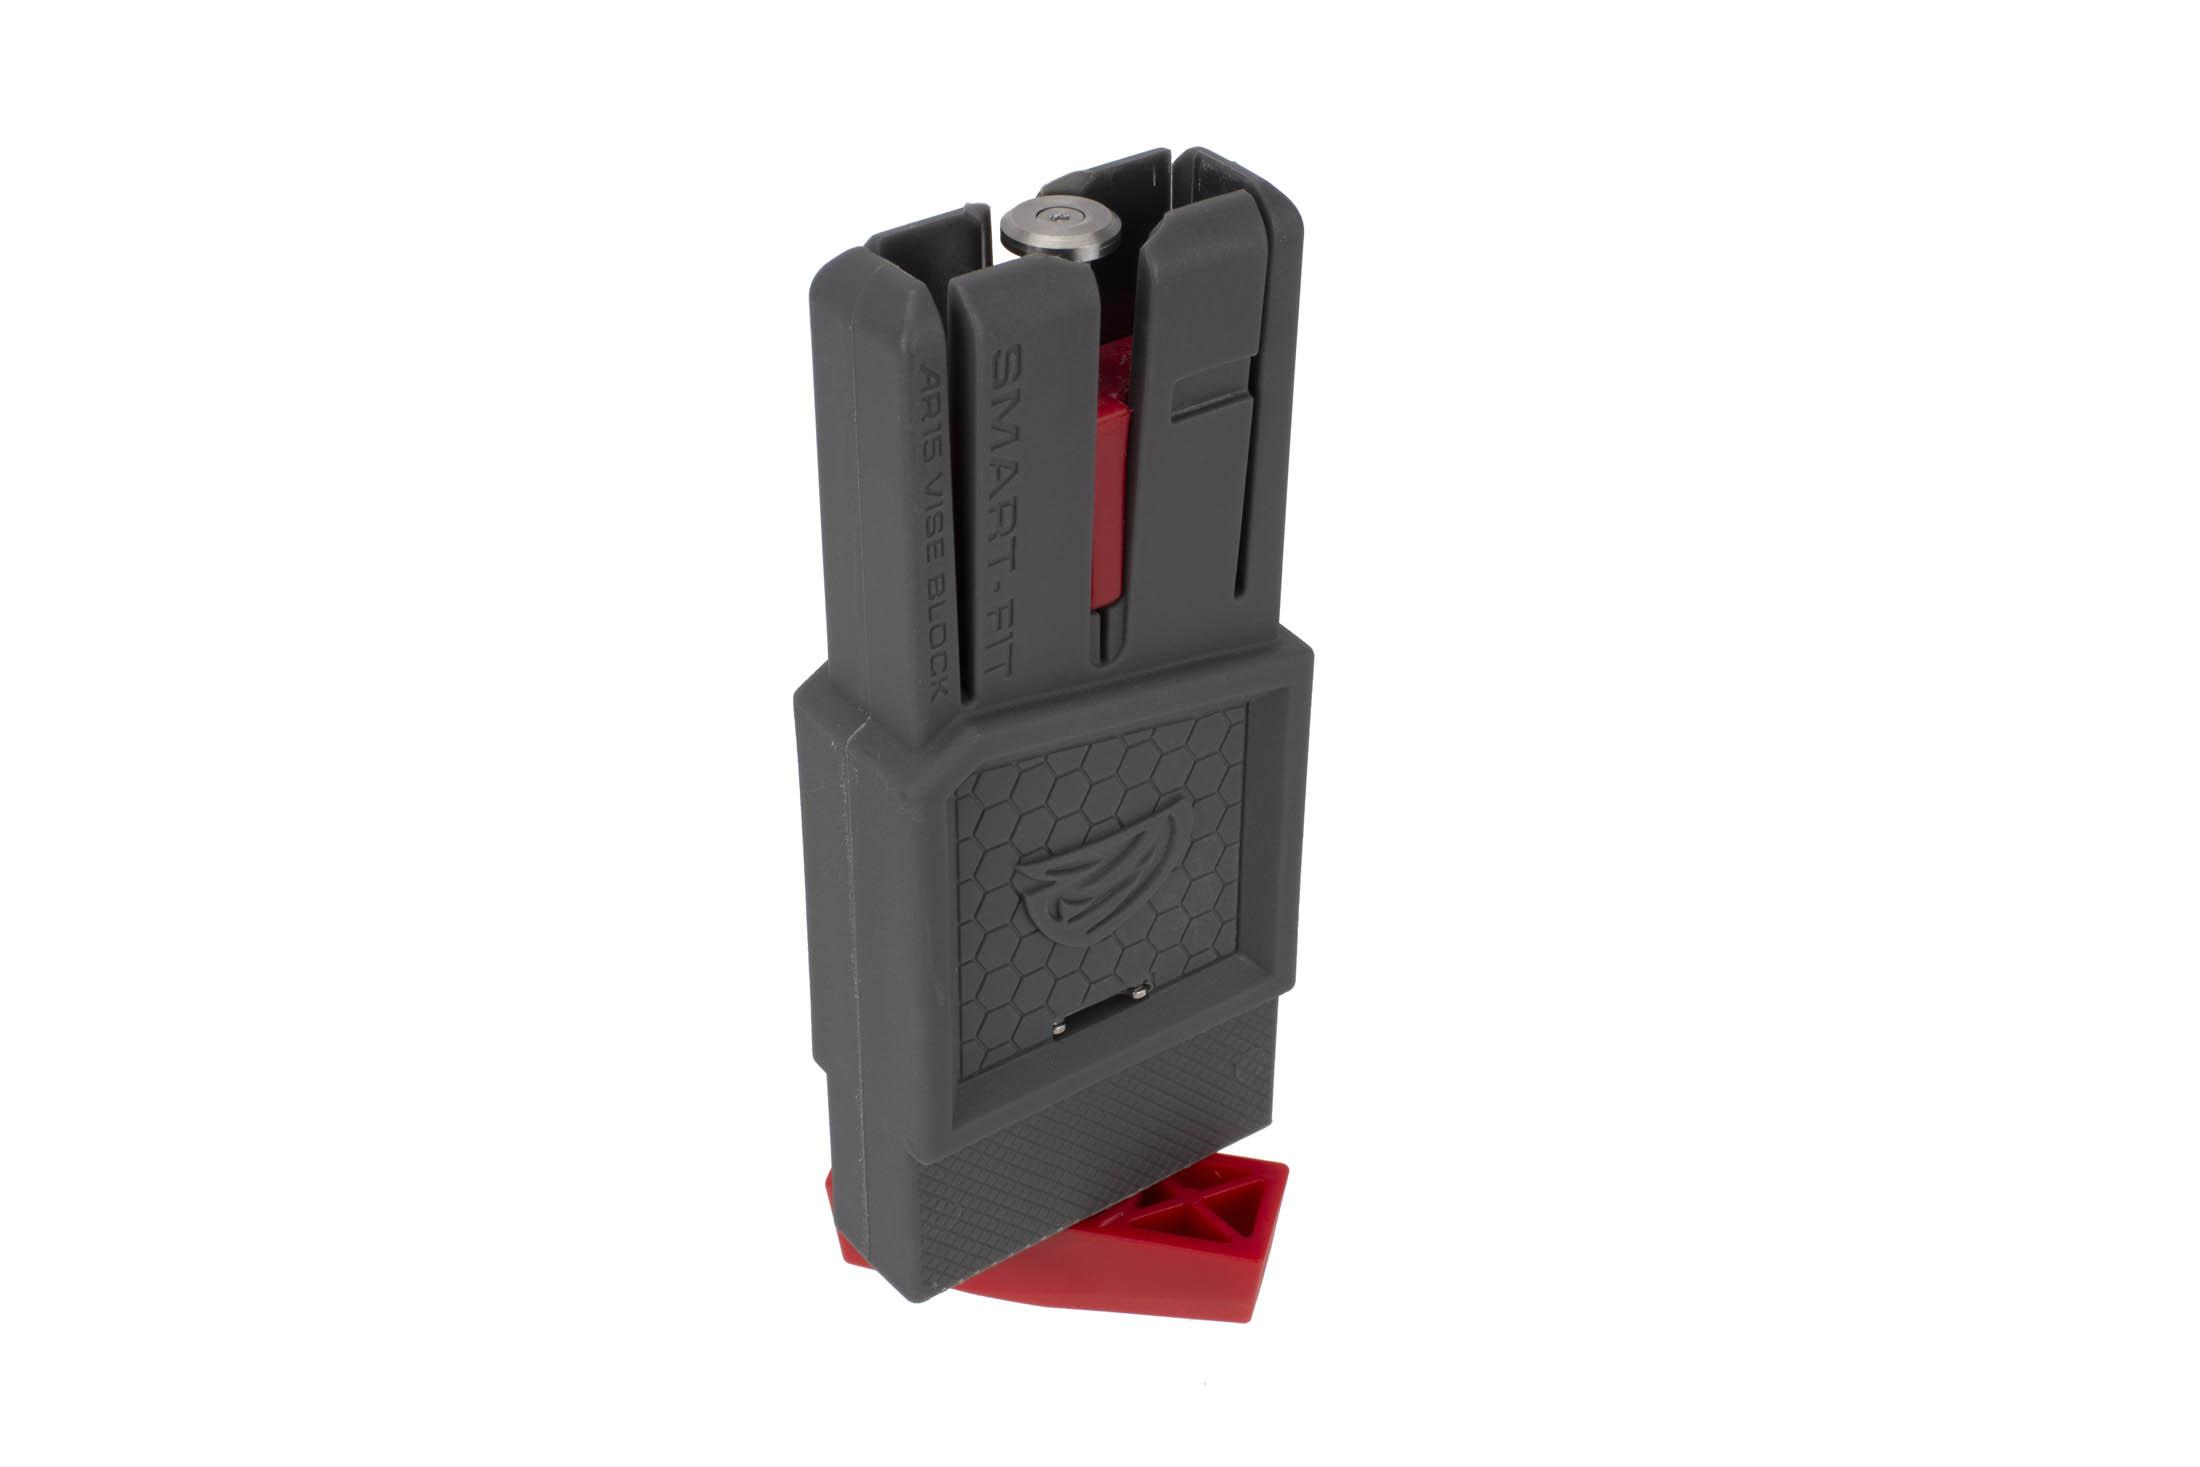 The Real Avid Smart-Fit AR-15 Vise Block is compatible with AR-15 pattern rifles and pistols